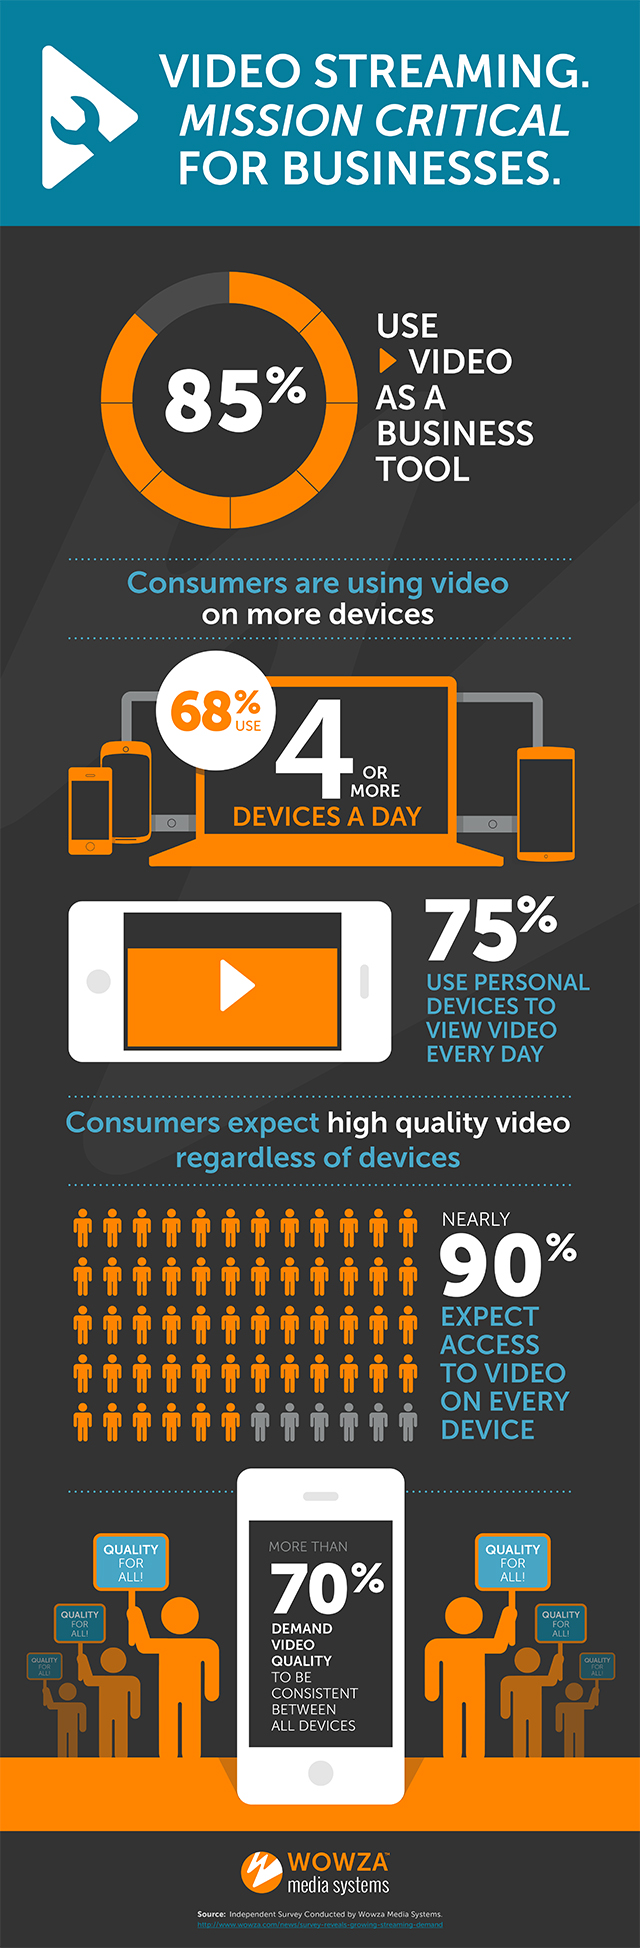 wowza_video_streaming_infographic_v4